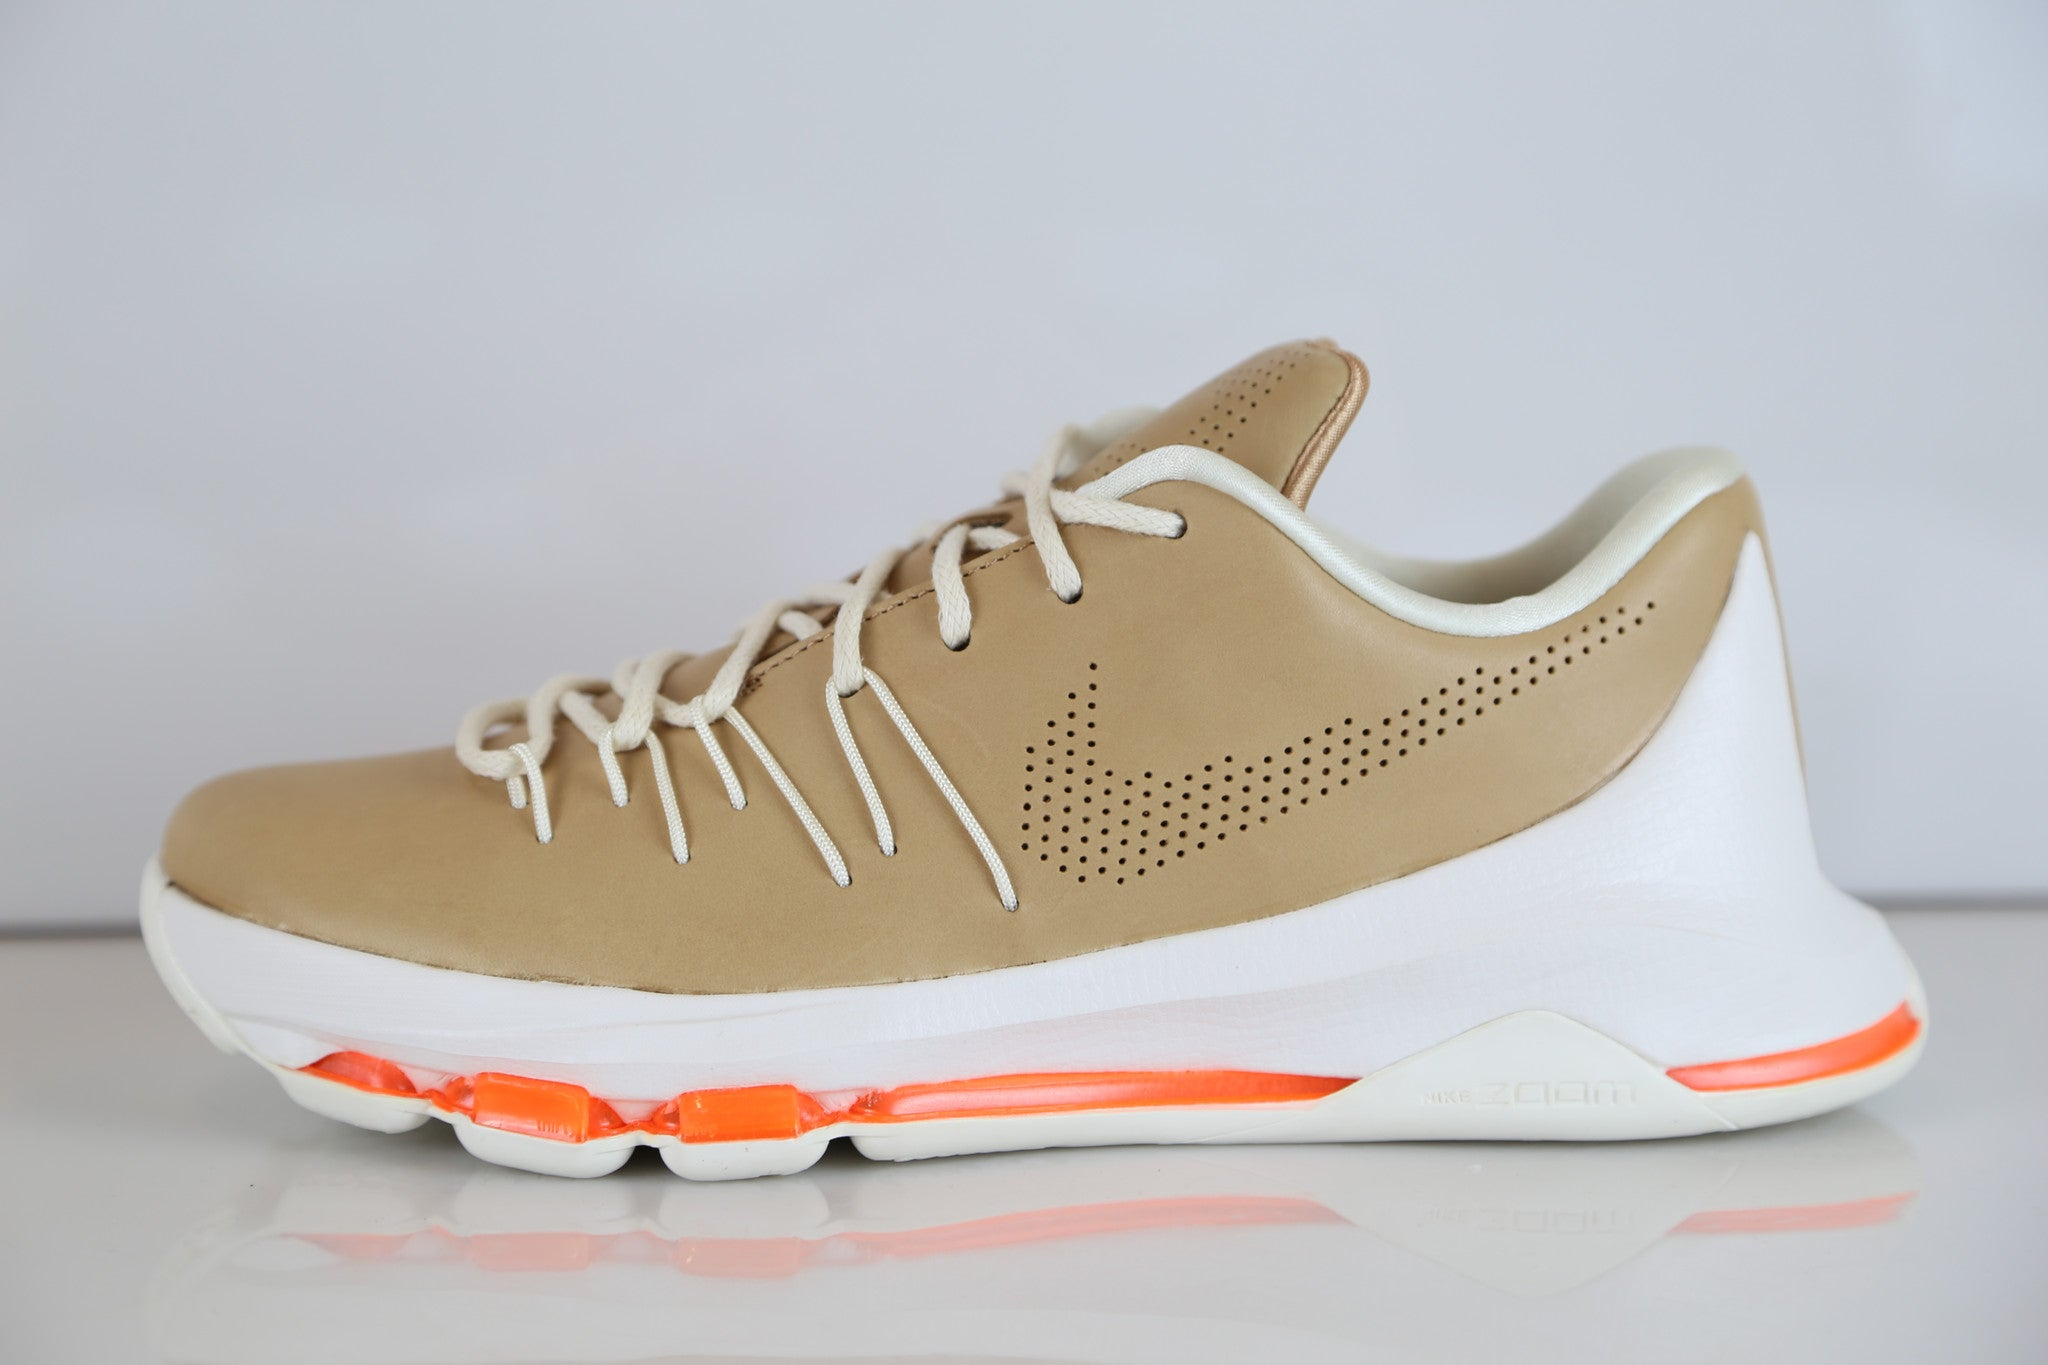 online store 8129f ecfd5 Nike KD 8 EXT Vachetta Tan Orange 806393-200 | Zadehkicks